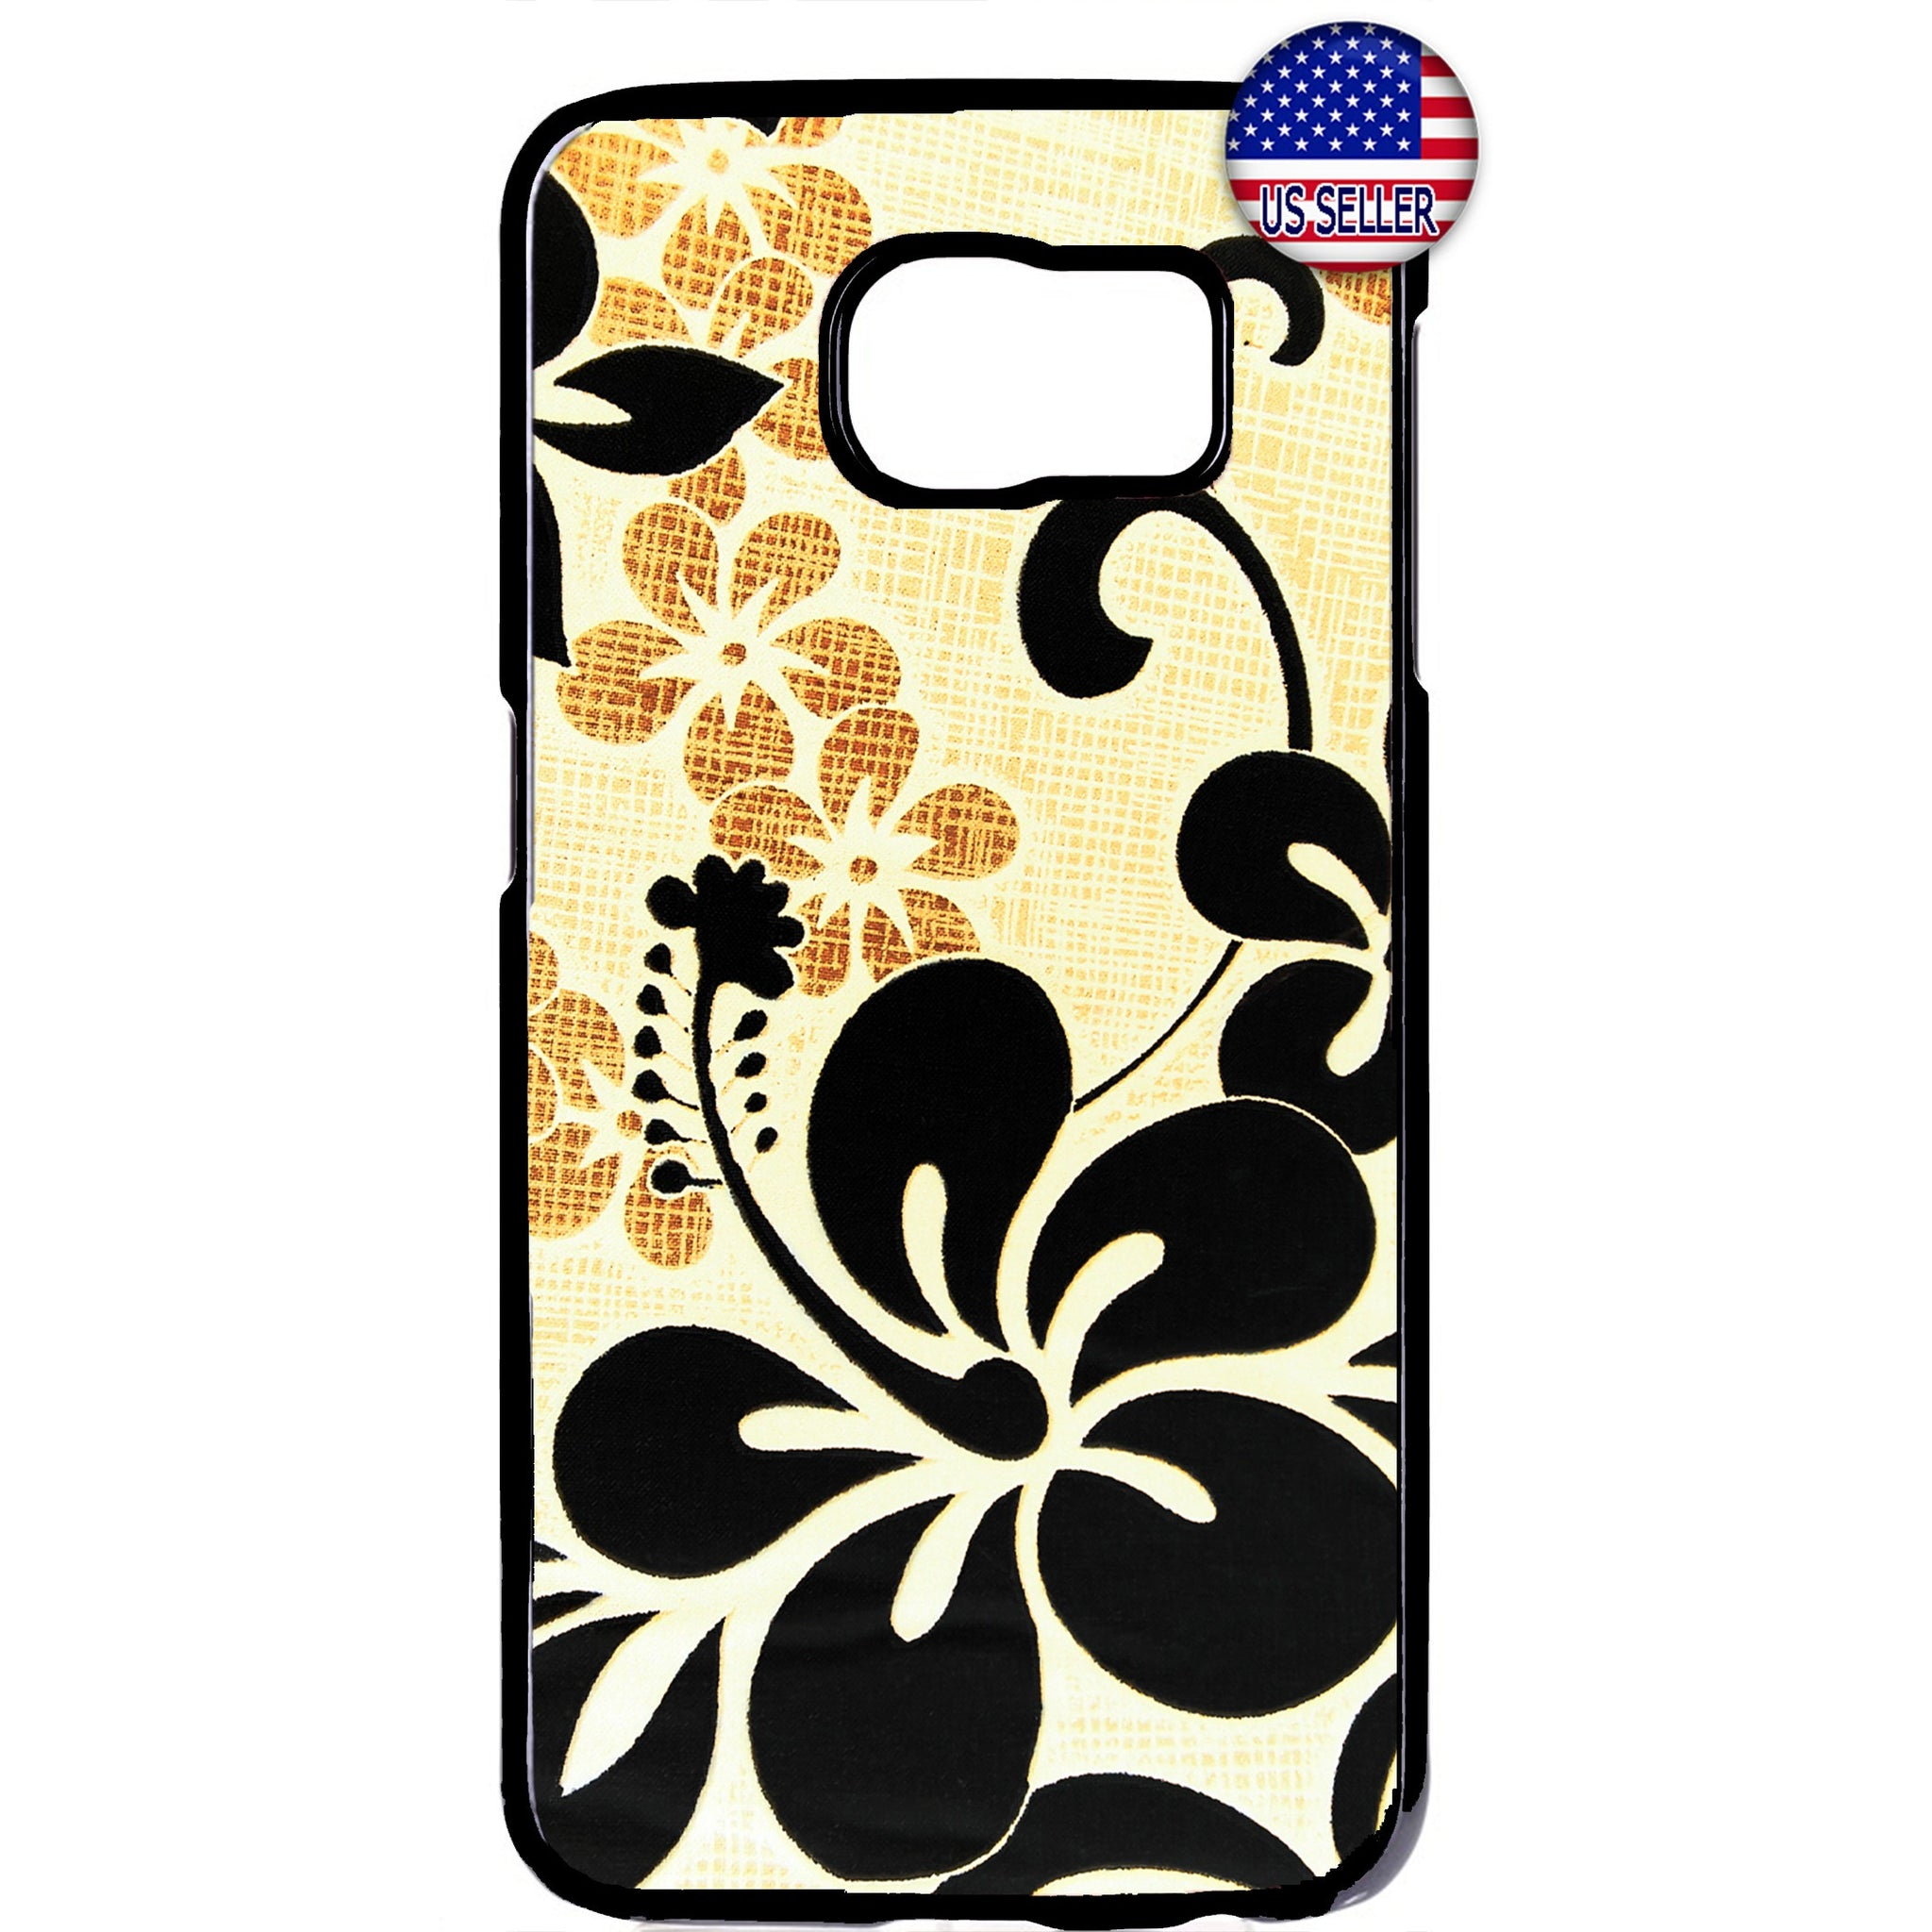 Black Floral Henna Flower Garden Rubber Case Cover For Samsung Galaxy Note